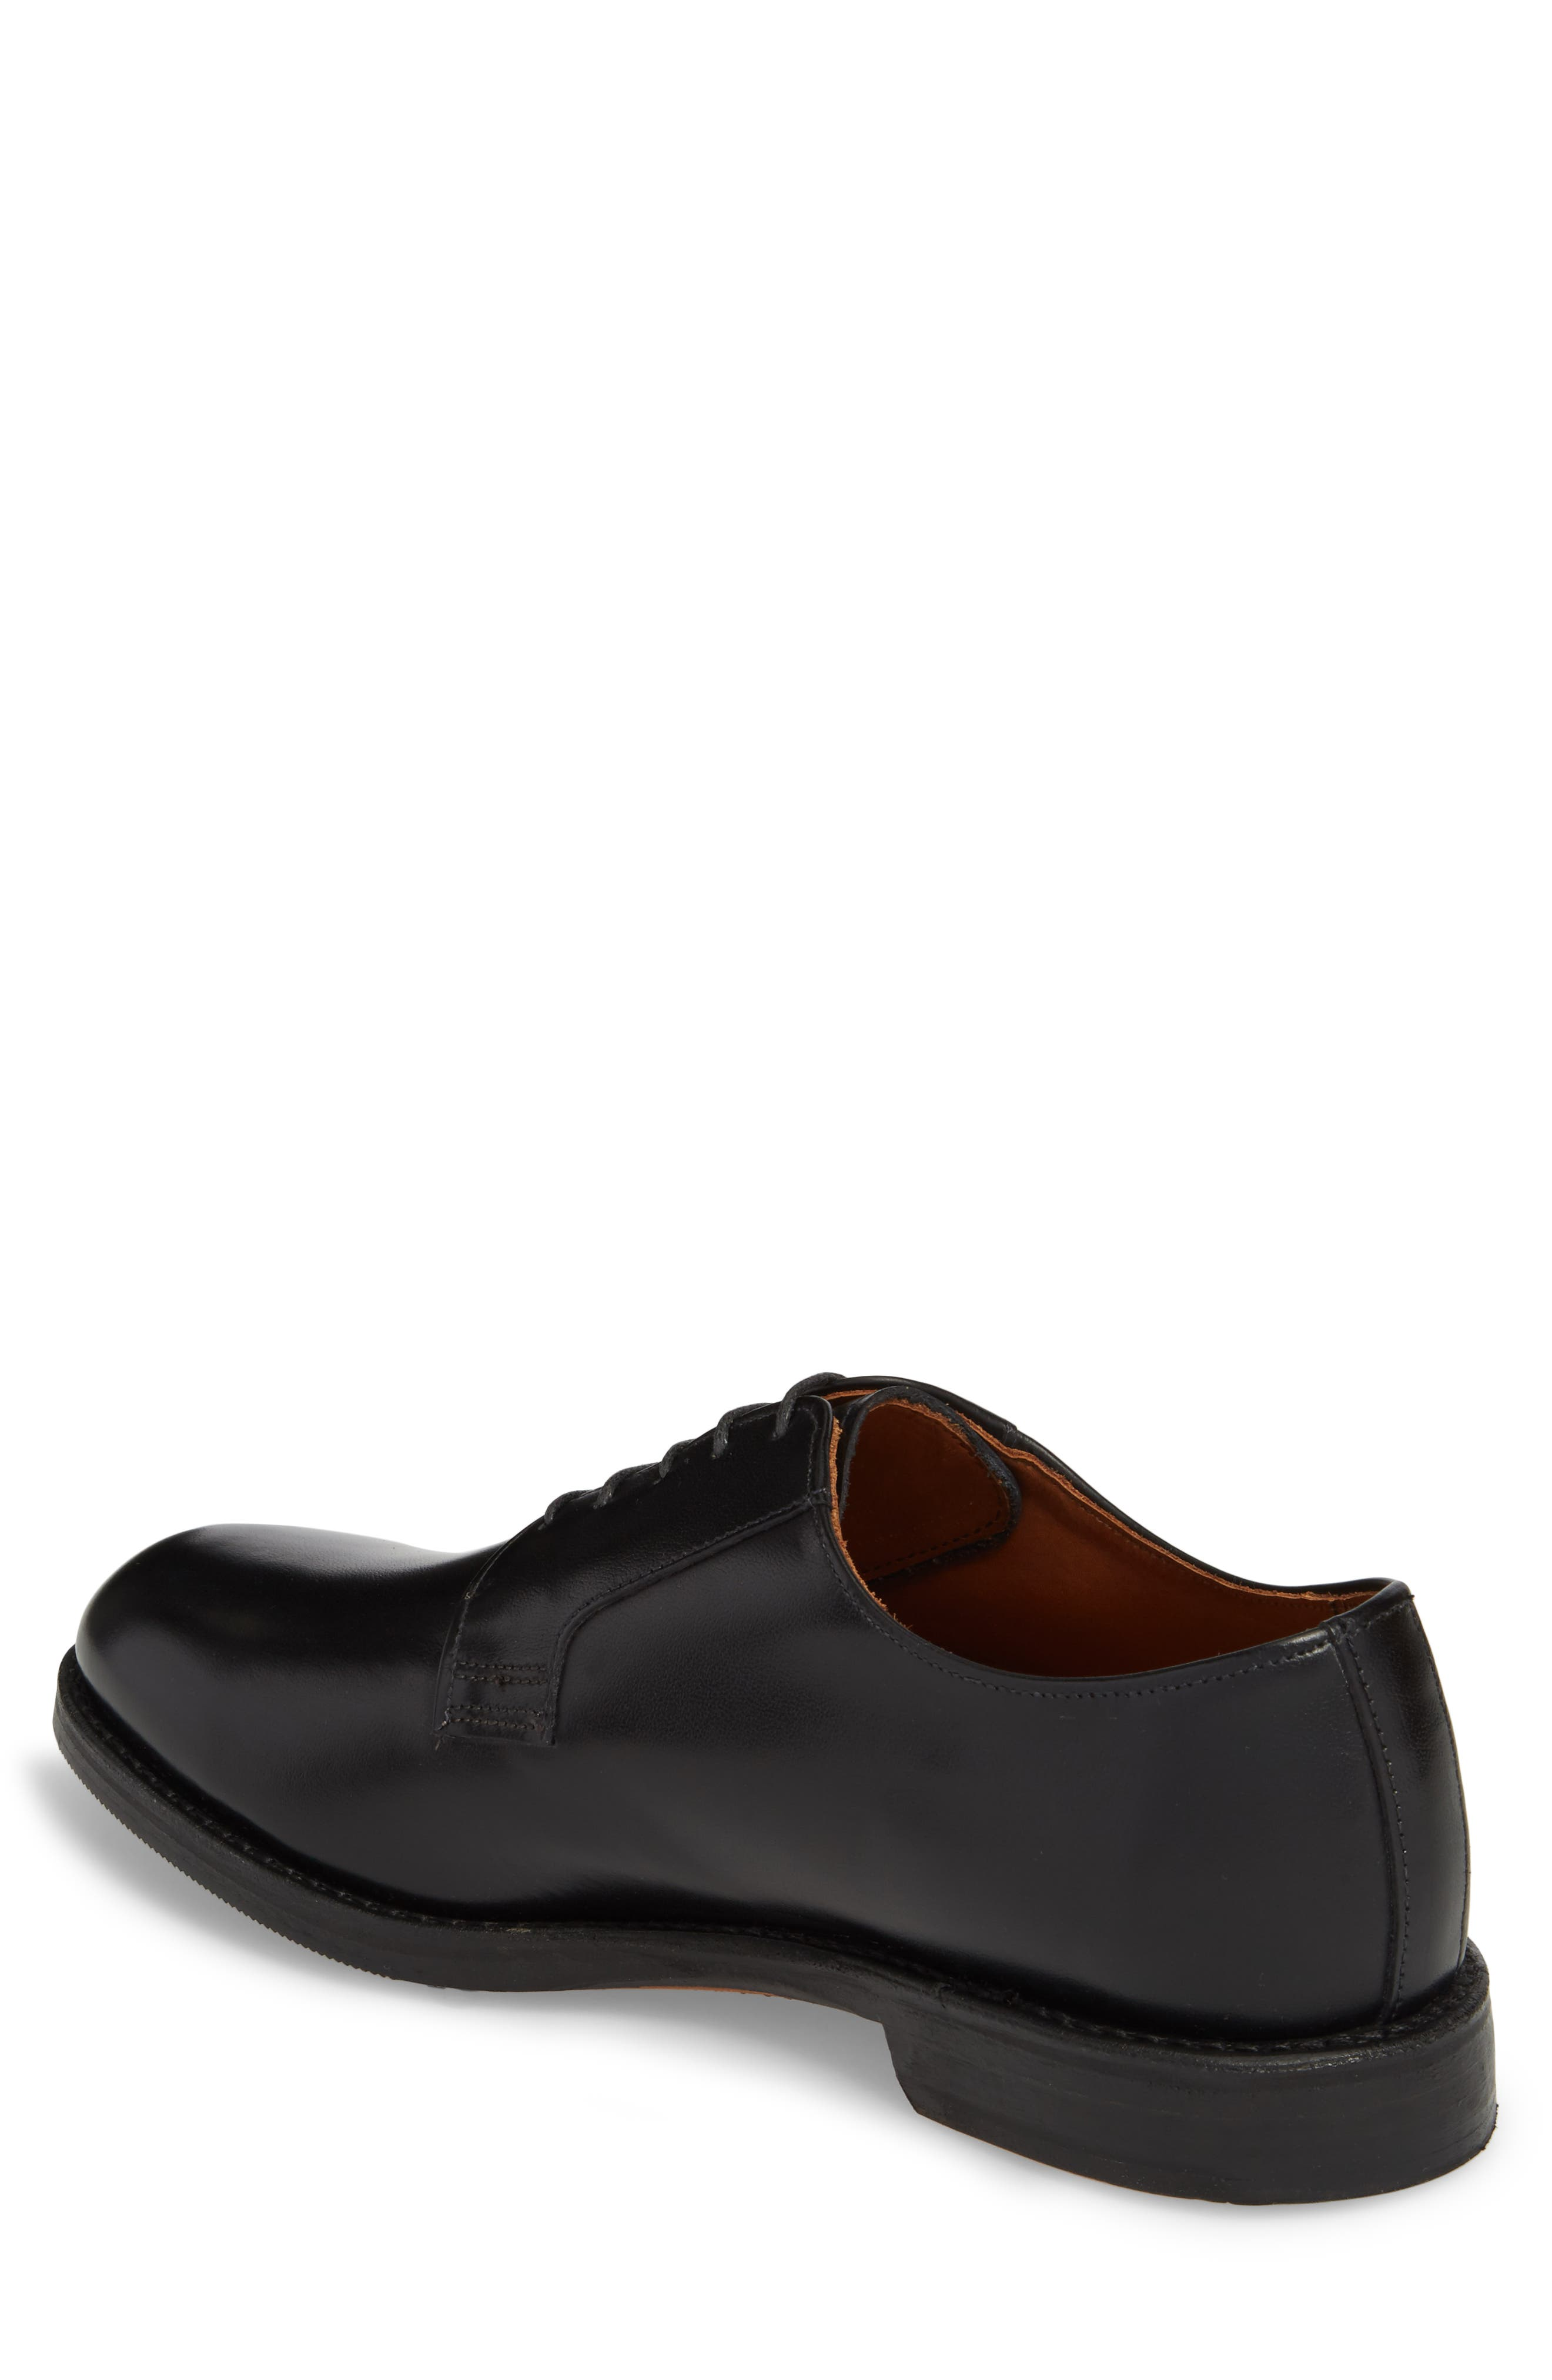 Whitney Plain Toe Derby,                             Alternate thumbnail 2, color,                             BLACK LEATHER